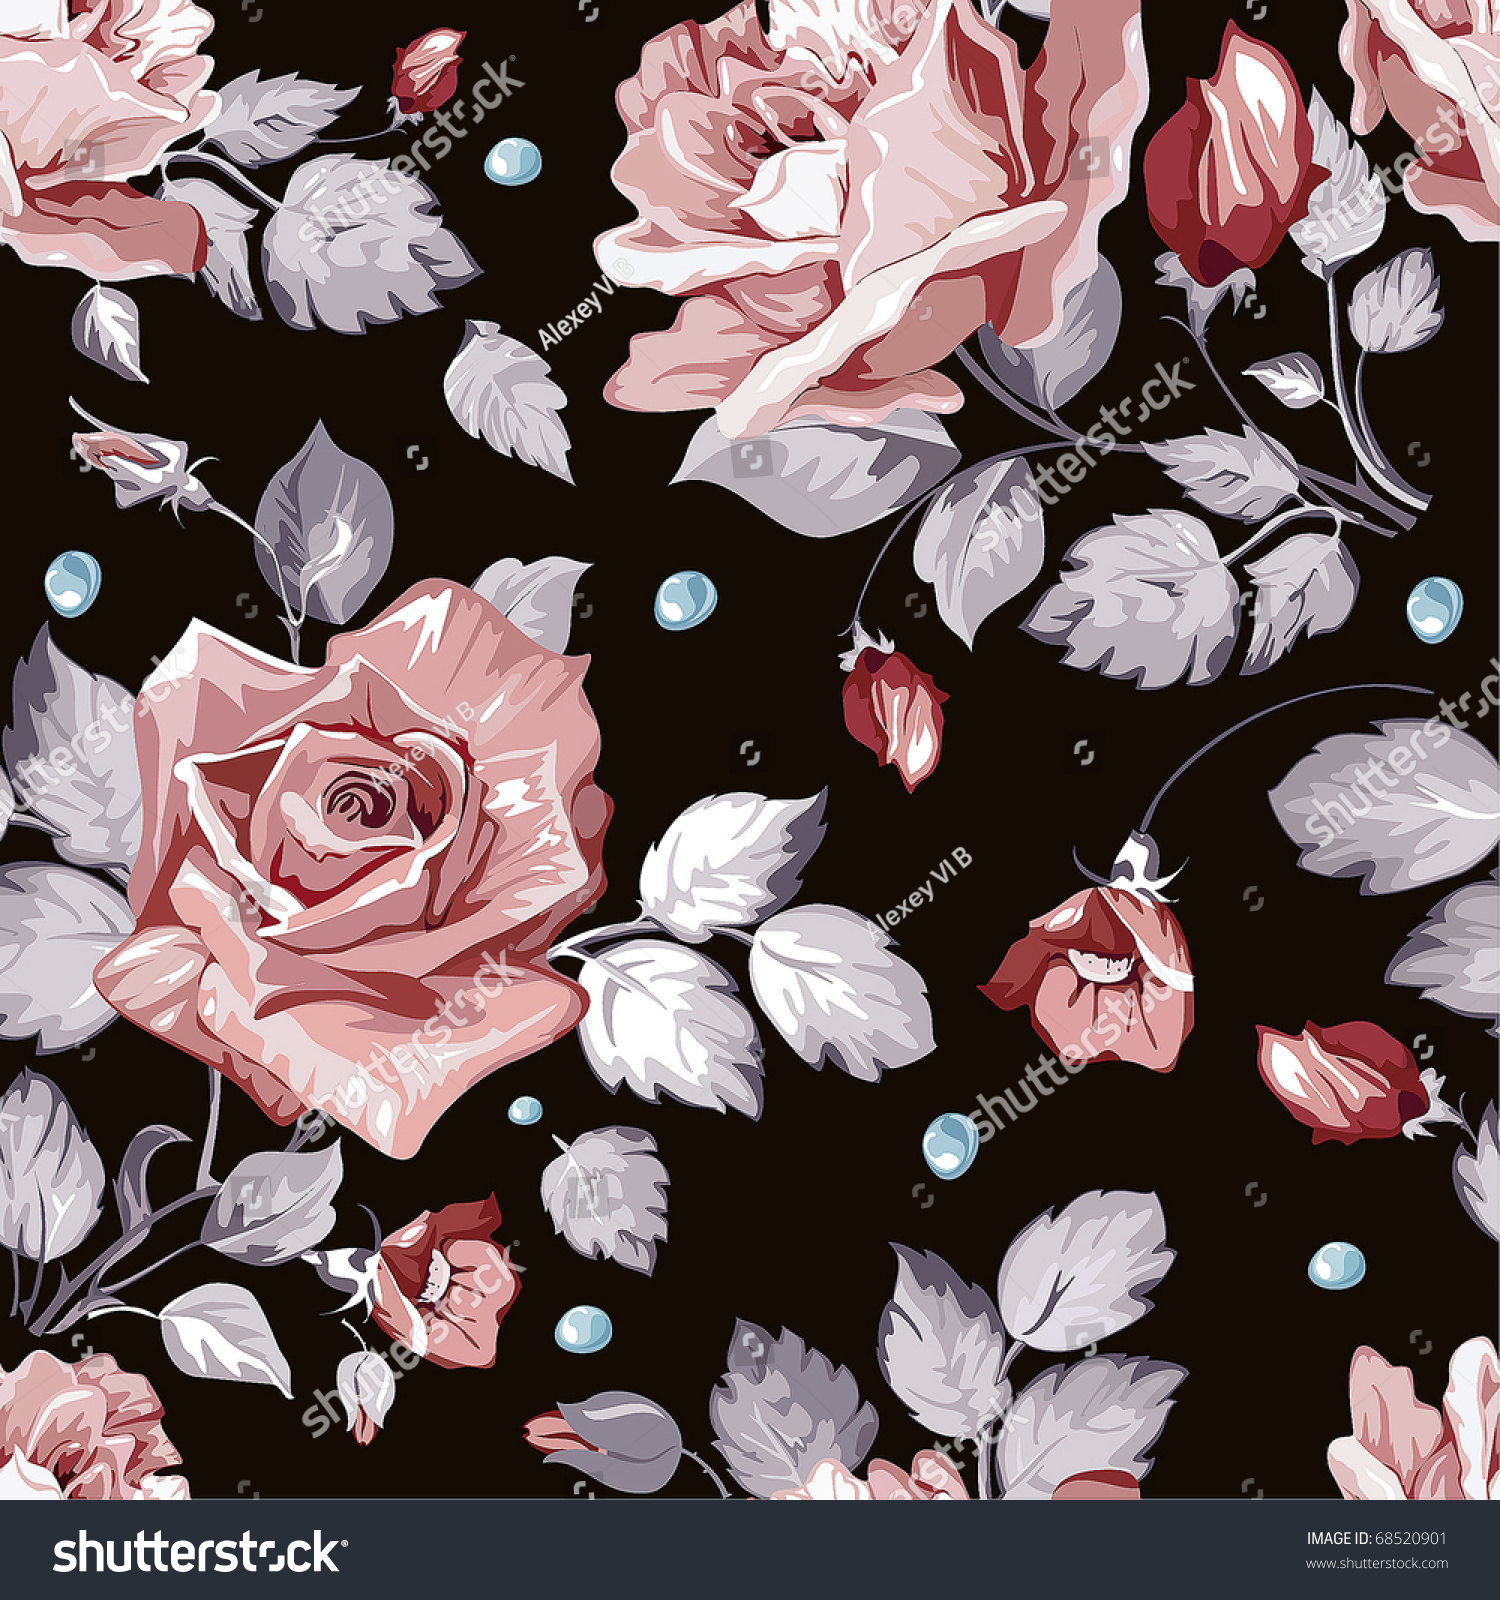 Cute Rain Drop Wallpaper No Watermark Elegance Seamless Wallpaper Pattern Pink Roses Stock